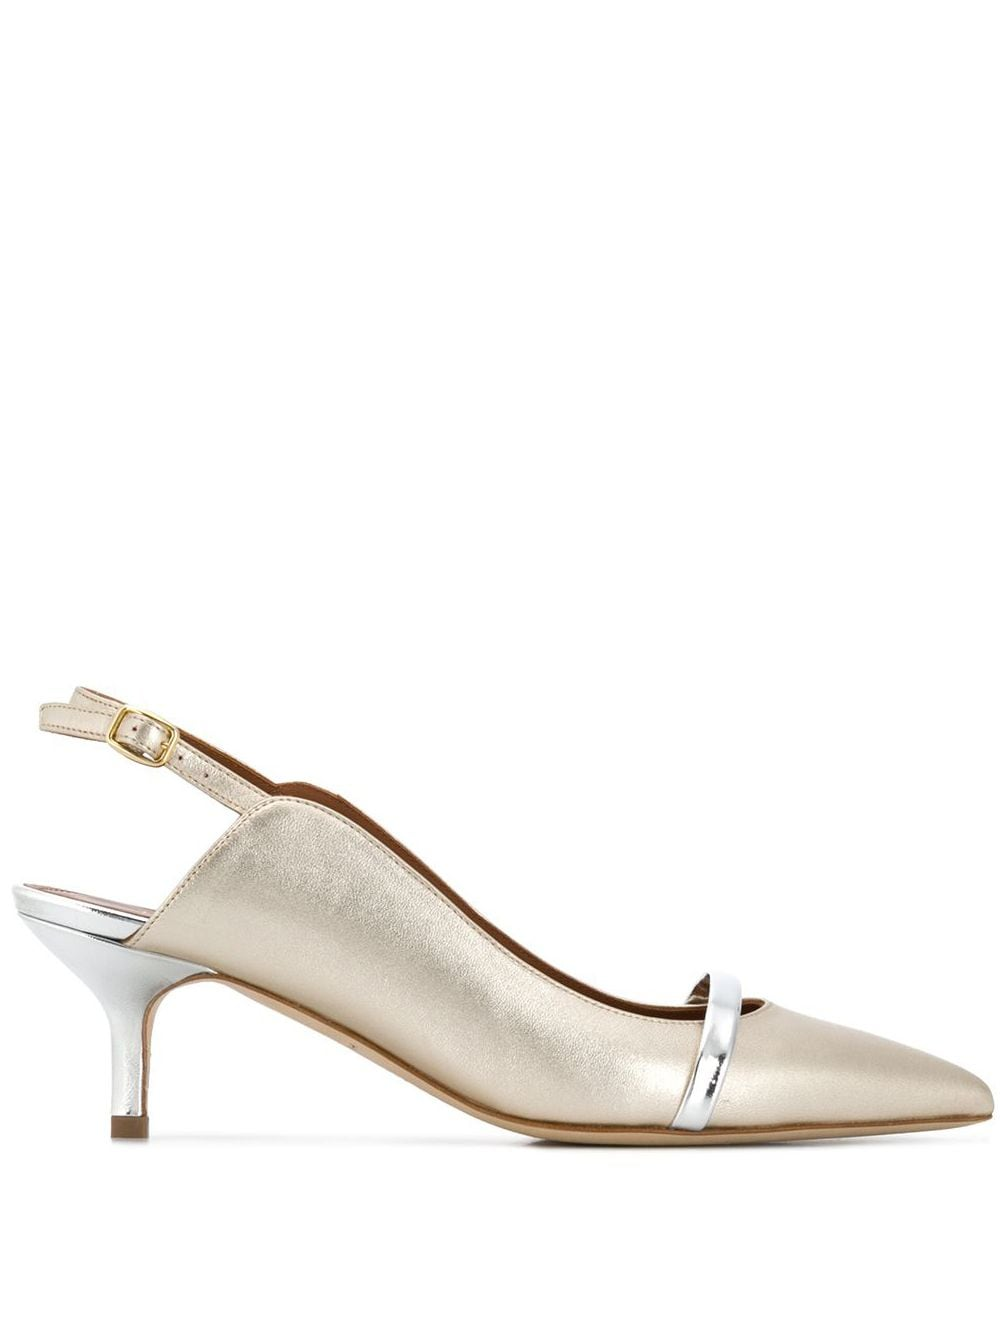 Malone Souliers Marion Luwolt pumps - GOLD von Malone Souliers